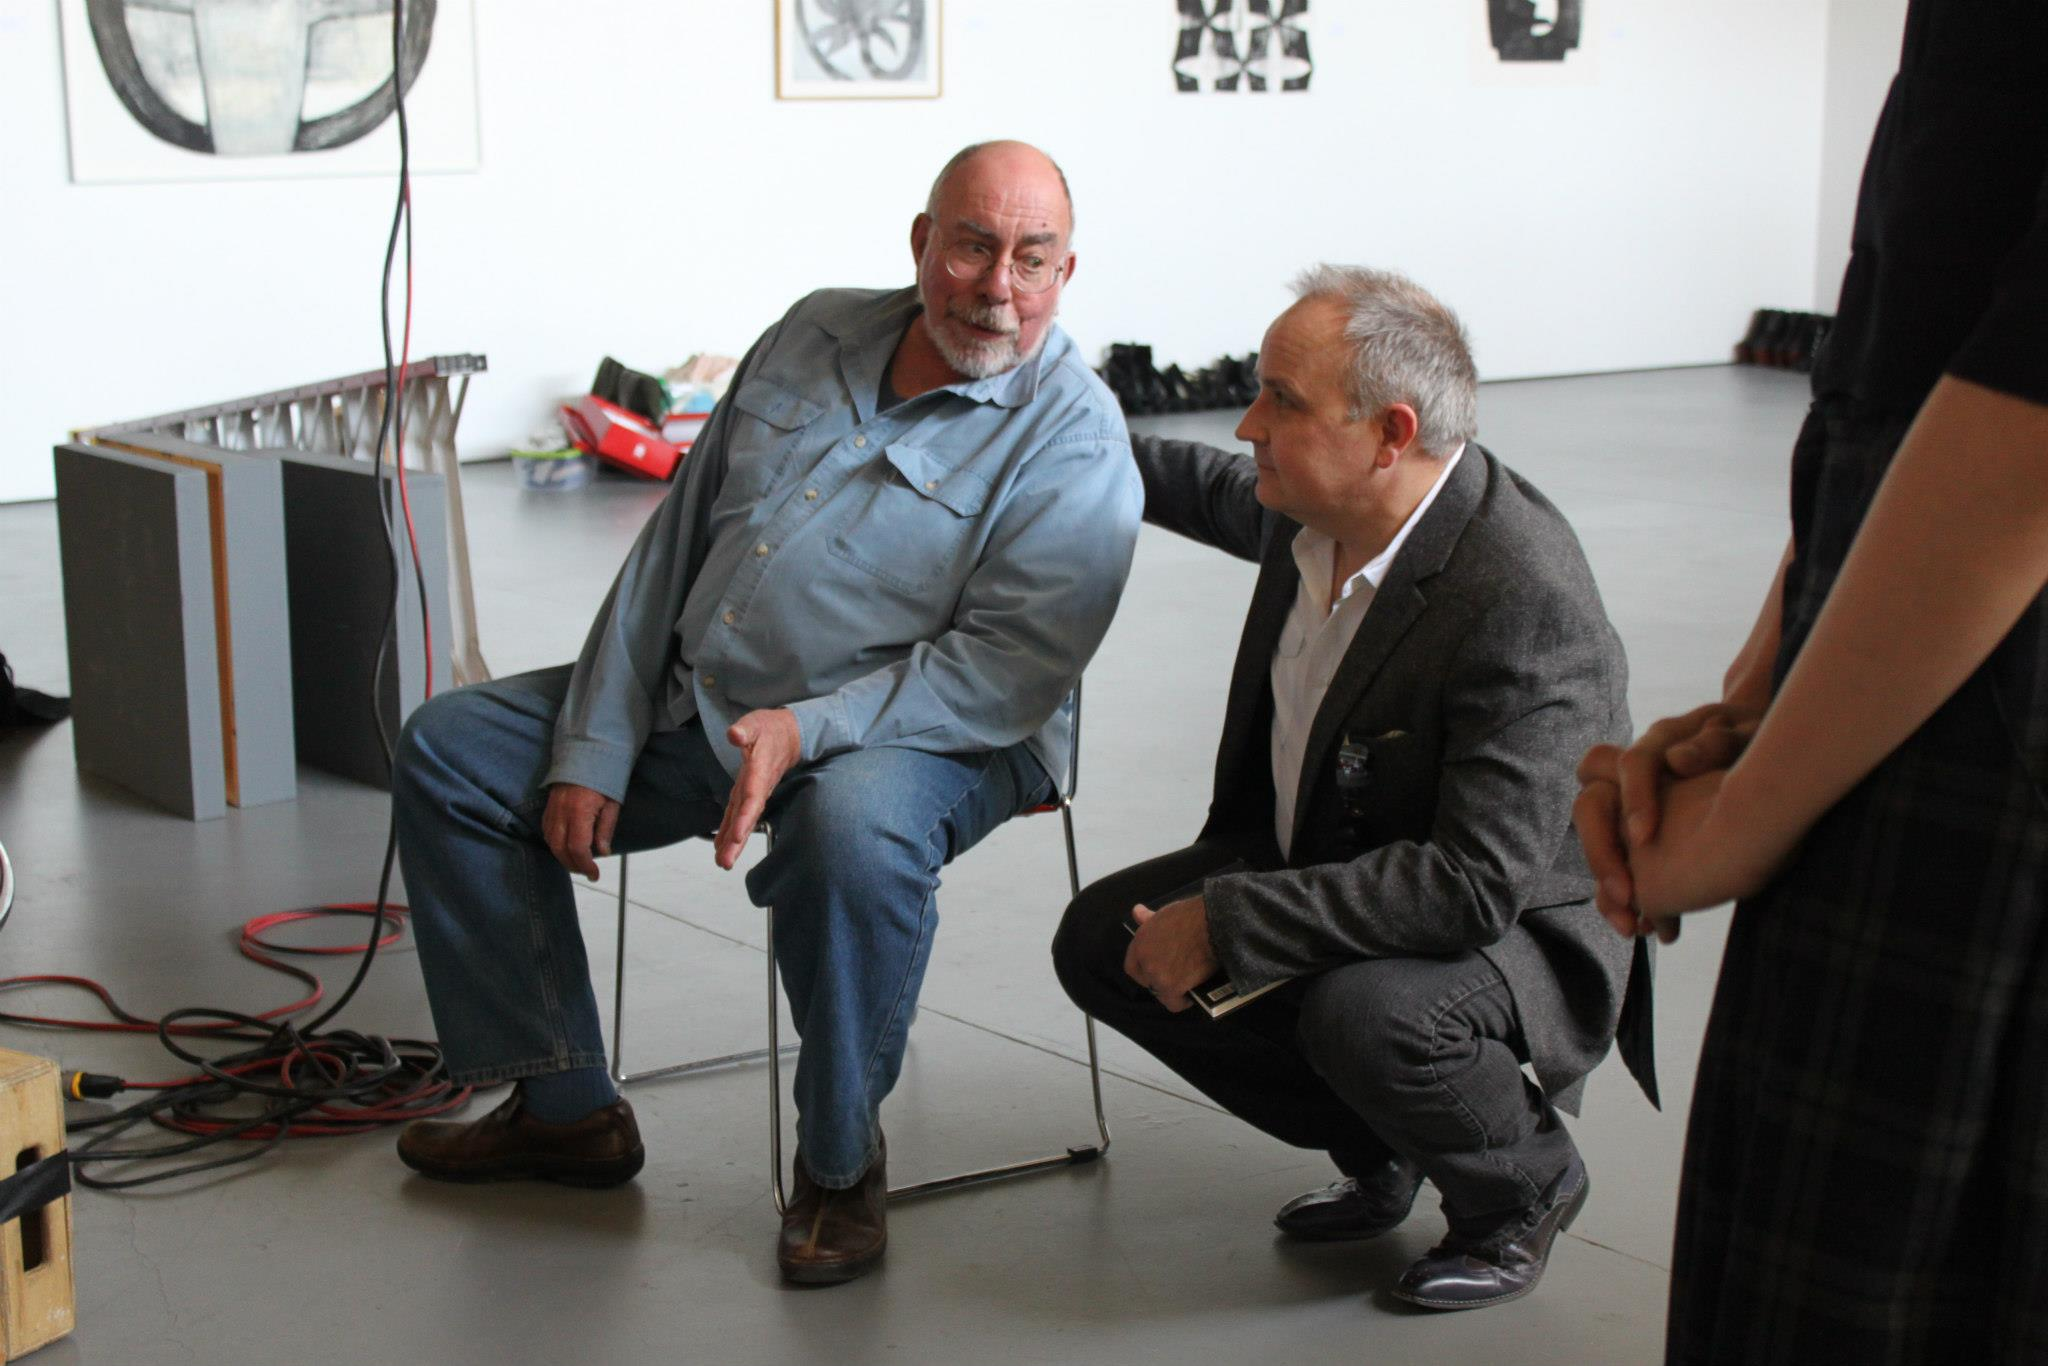 Richard Kramer (left) and Radley Cramer (right) at a photoshoot for the Fashion Look book